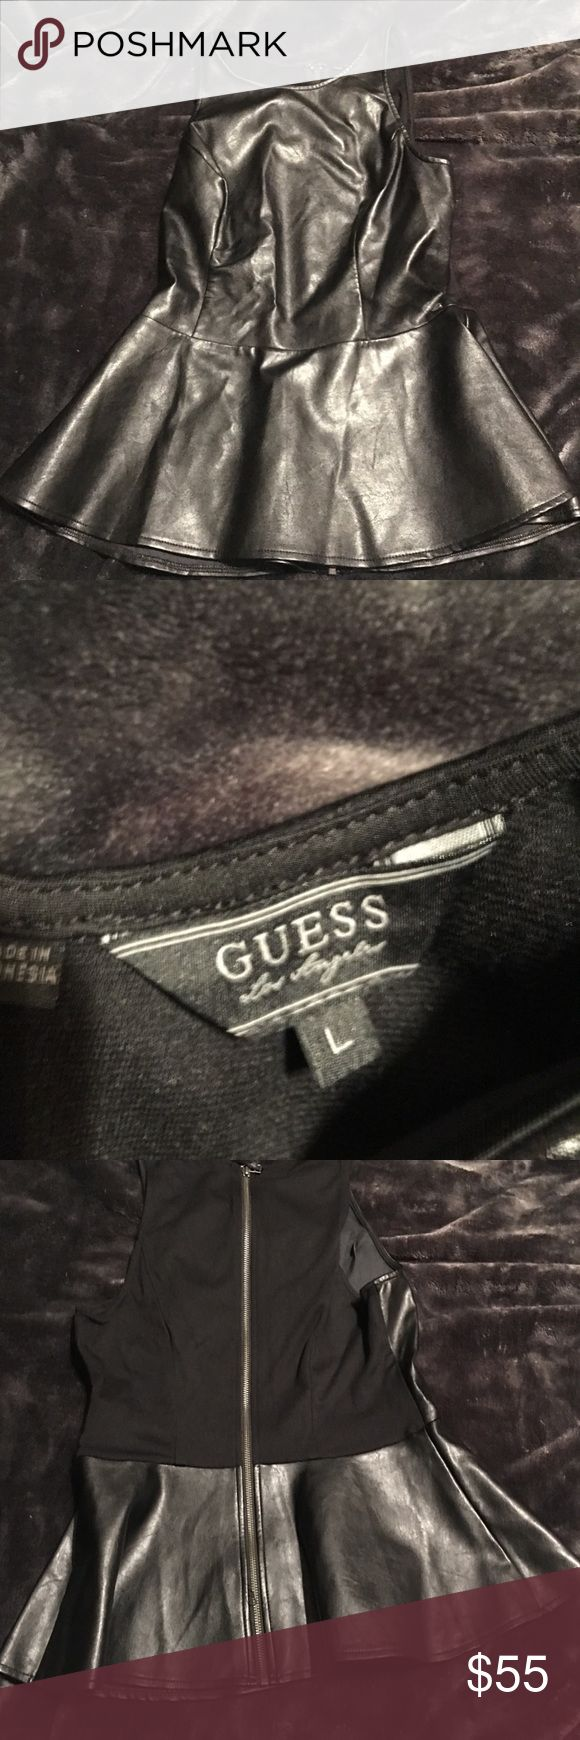 Guess faux black leather peplum top L EUC! It has a little stretch to it. Pristine condition! Guess Tops